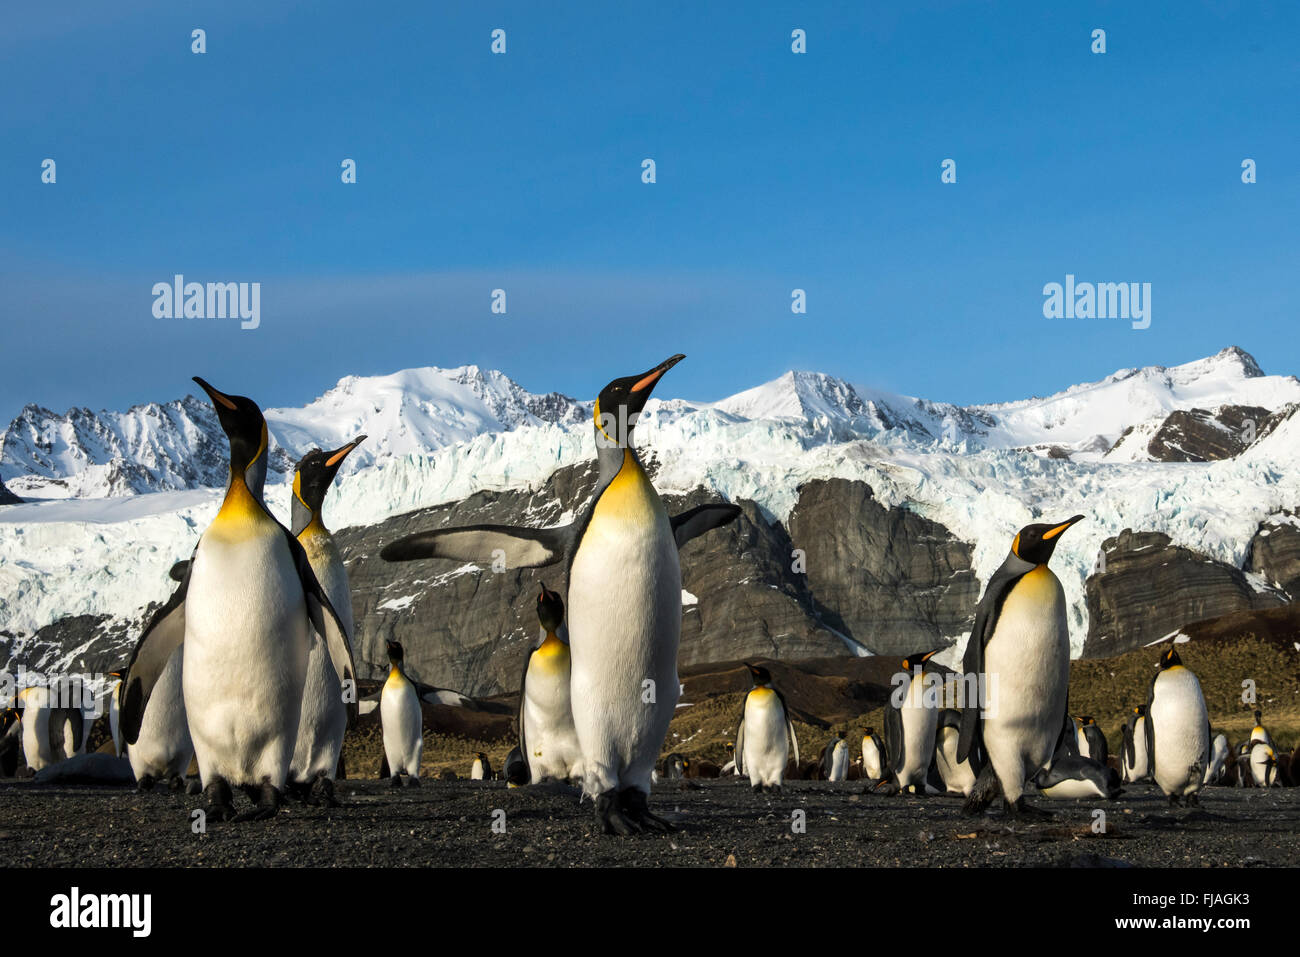 King Penguin (Aptenodytes patagonicus) adult on the beach Gold Harbour, South Georgia - Stock Image